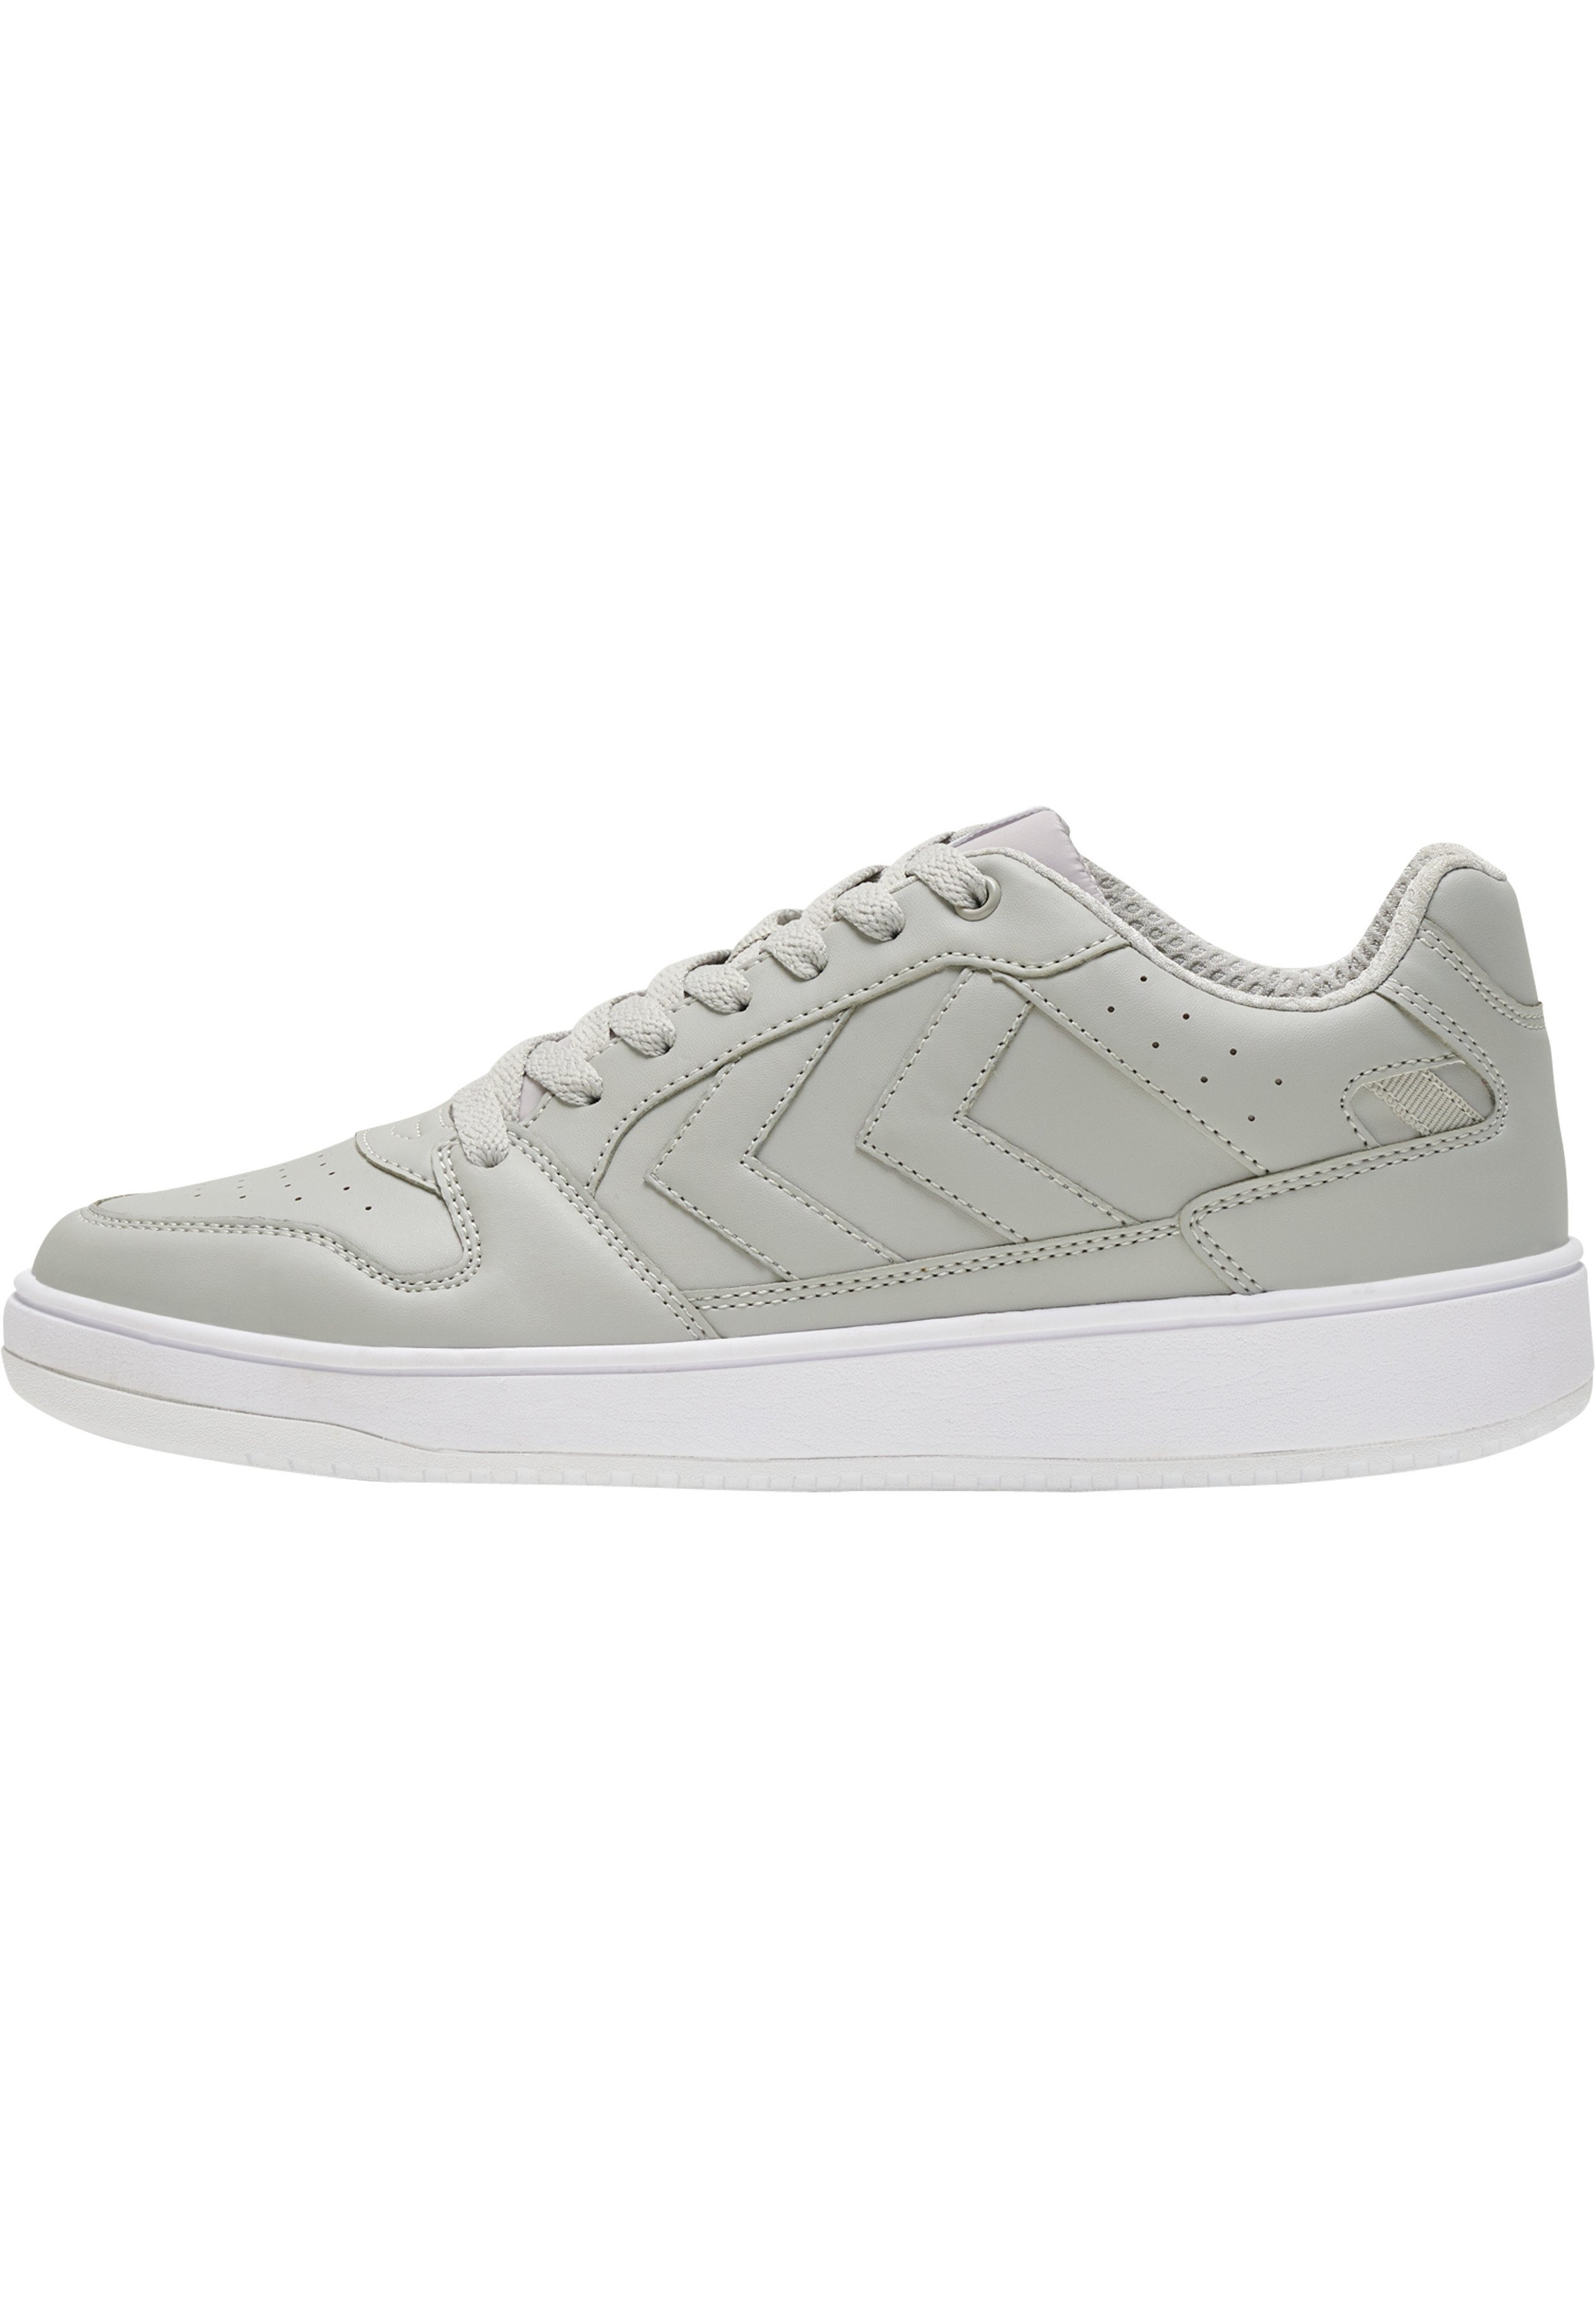 Homme ST. POWER PLAY - Baskets basses